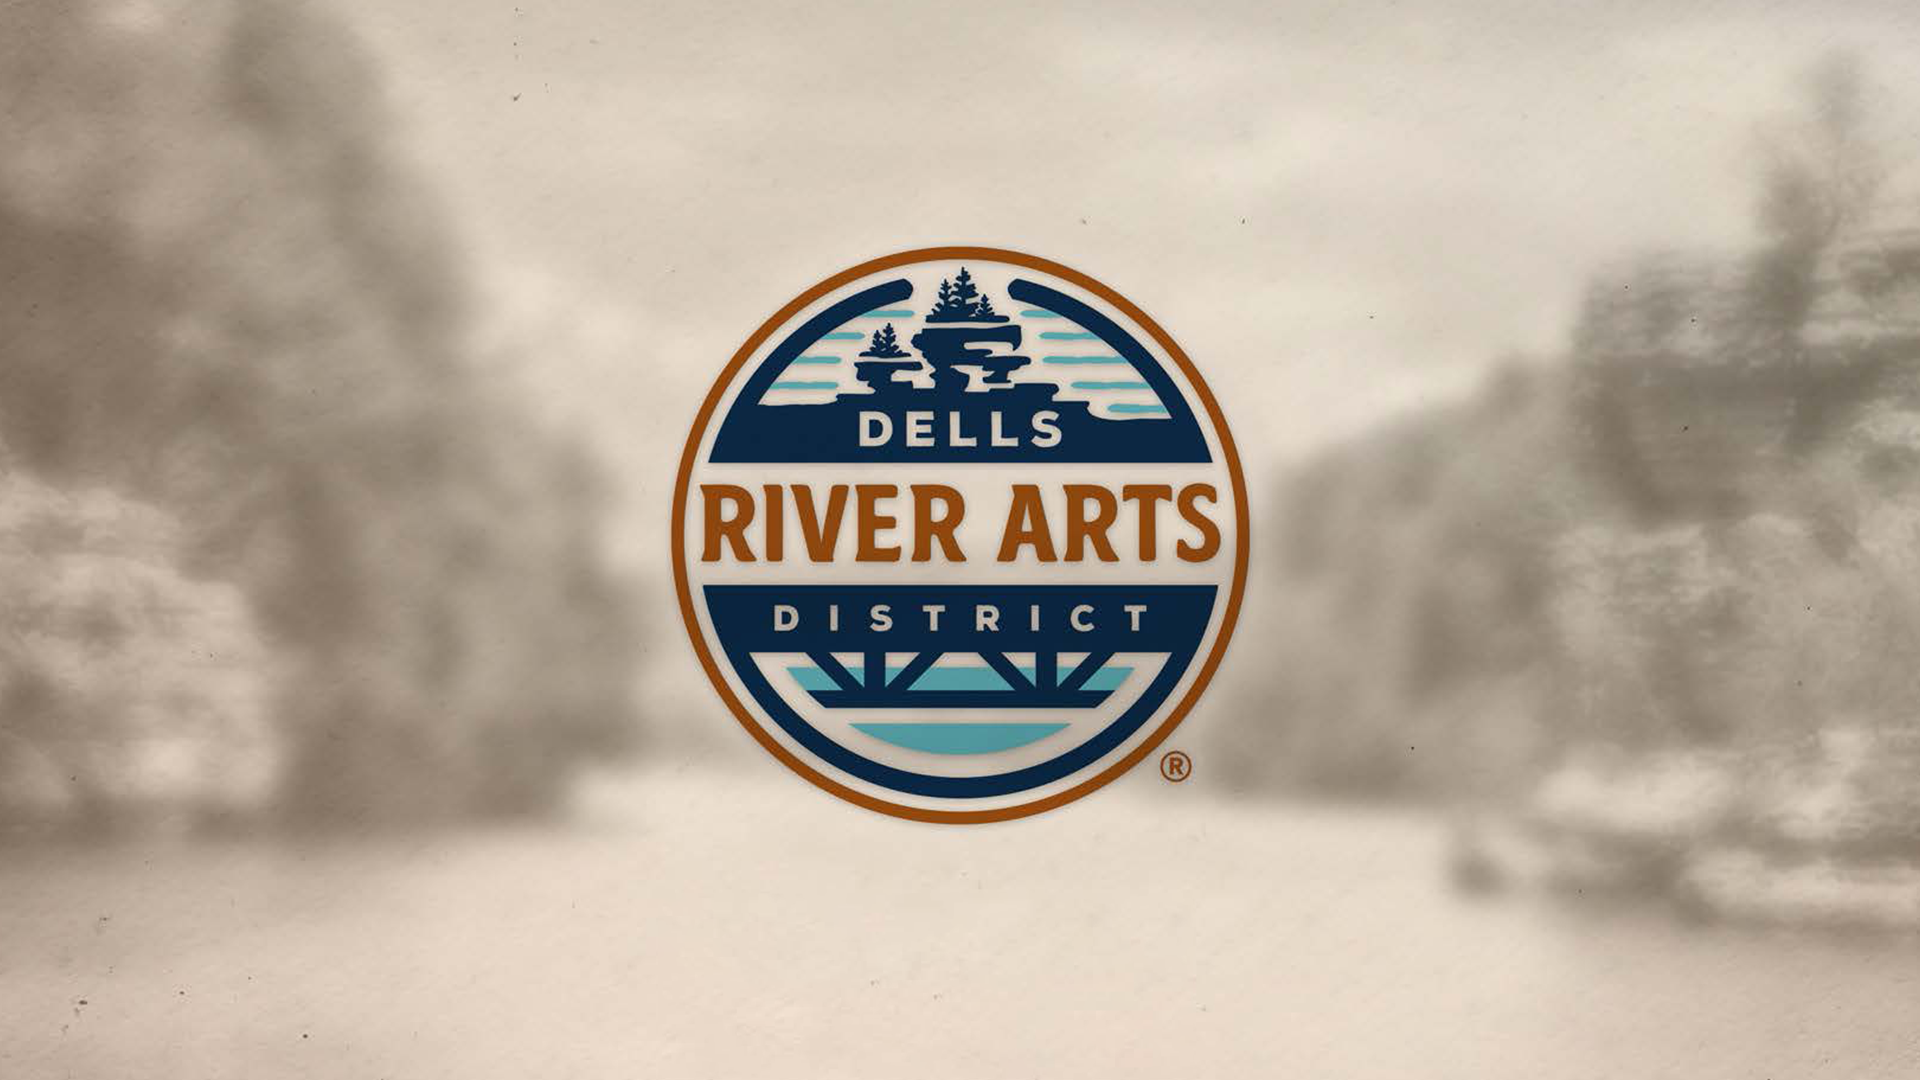 River Arts District Branding